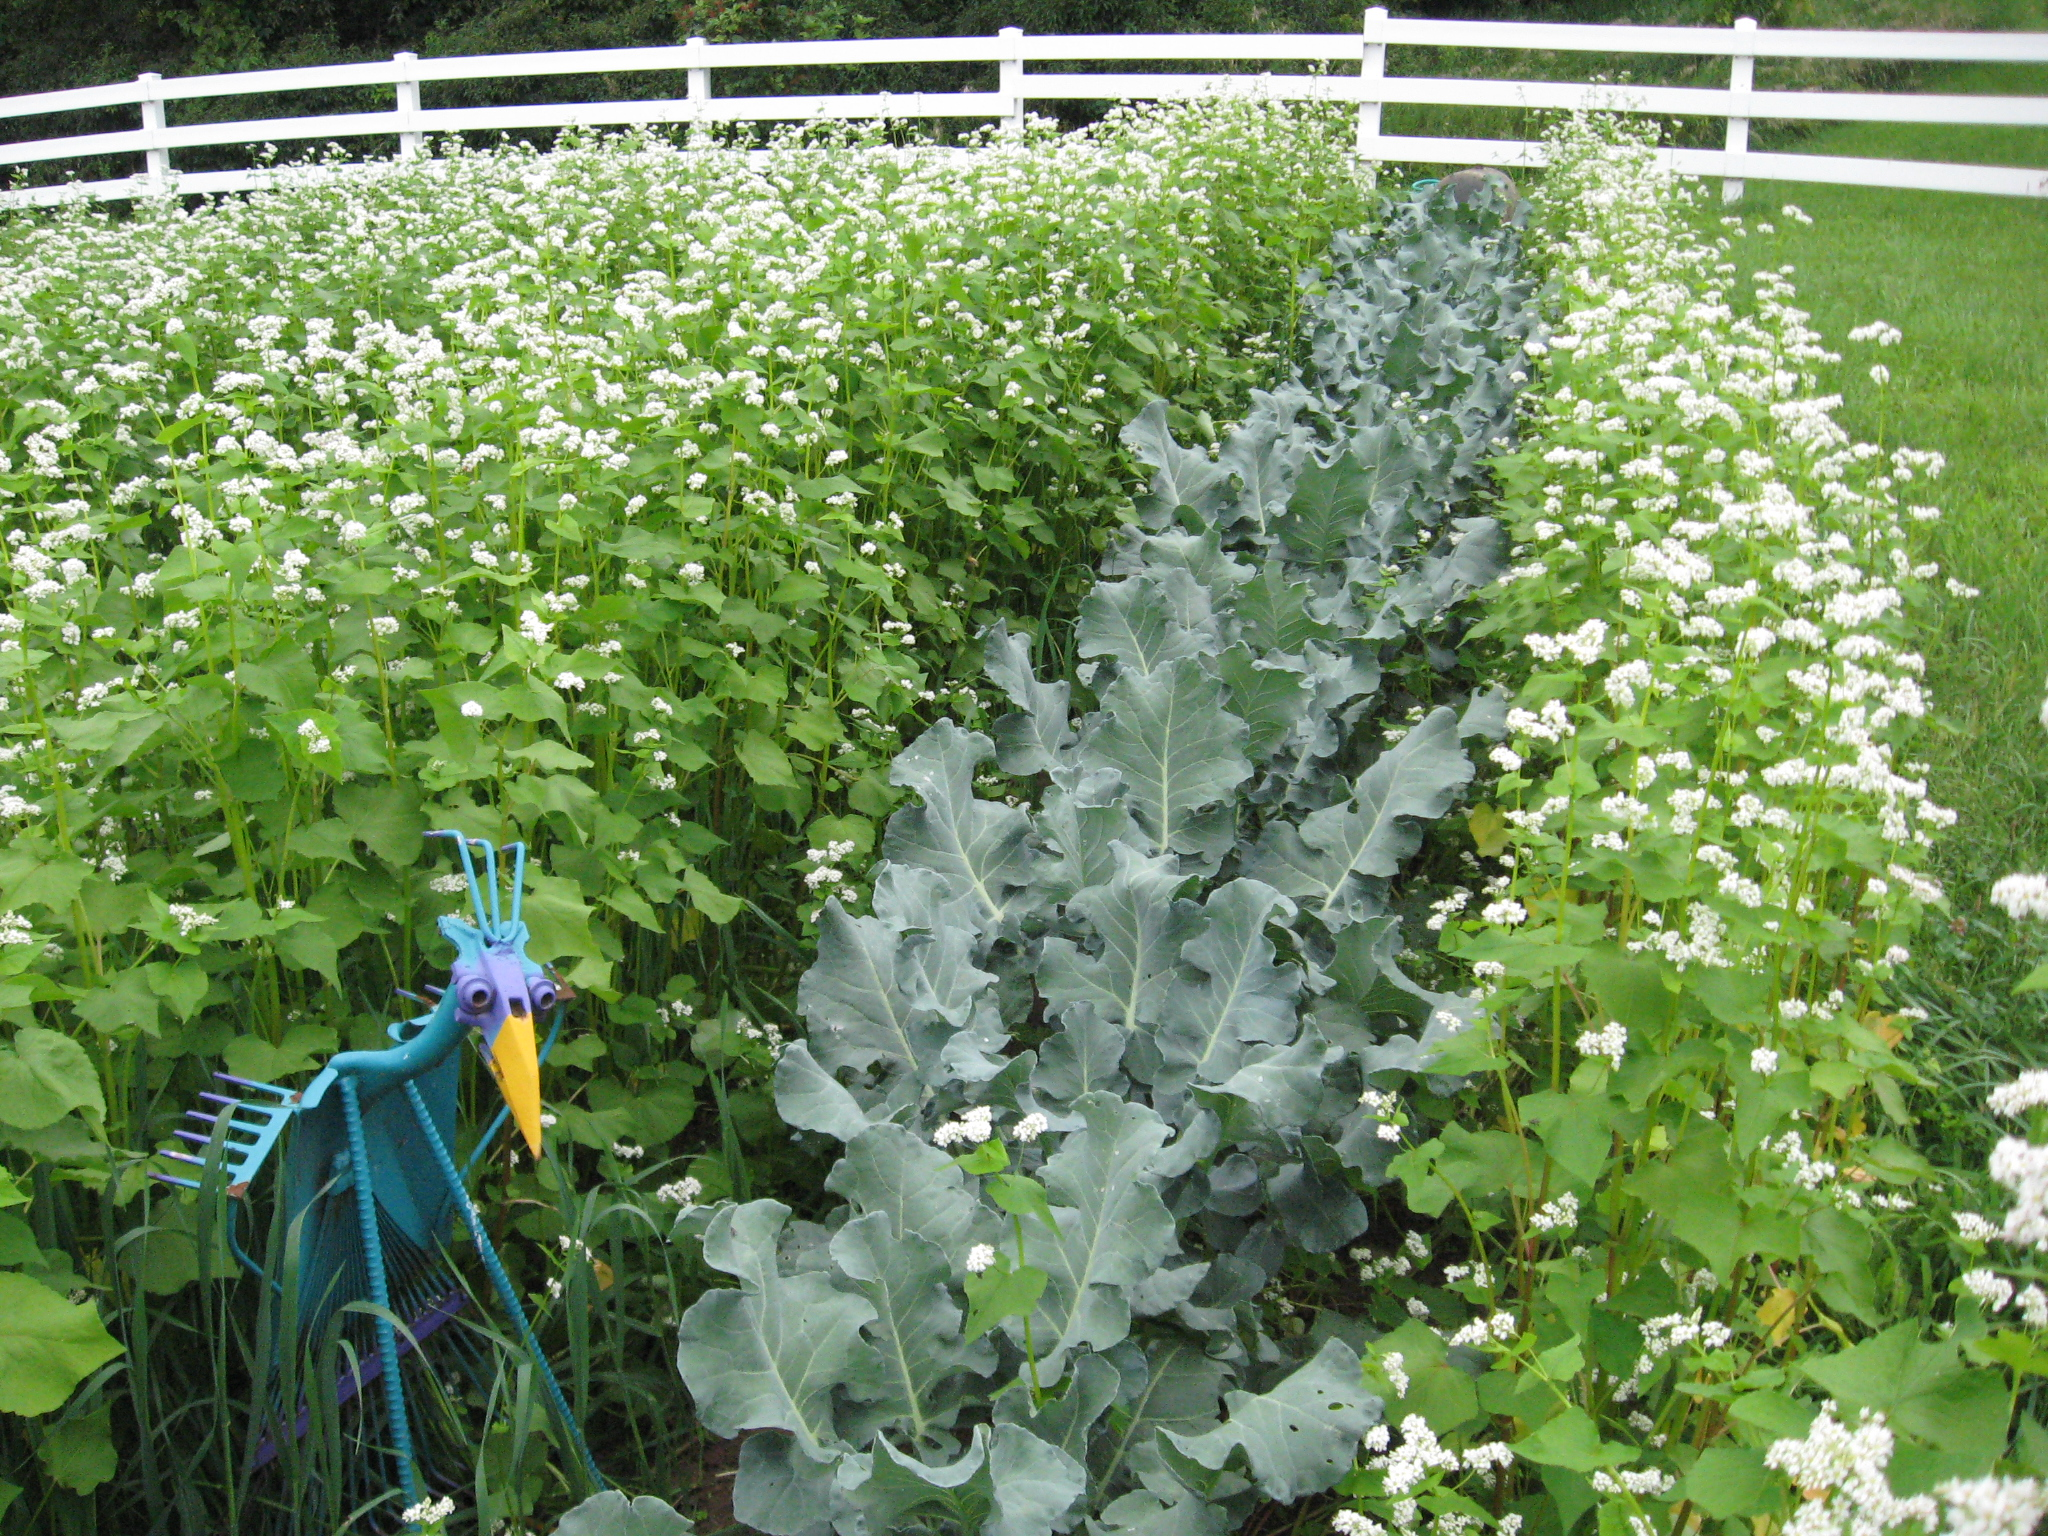 Img 1824 - Cover crops for vegetable gardens ...